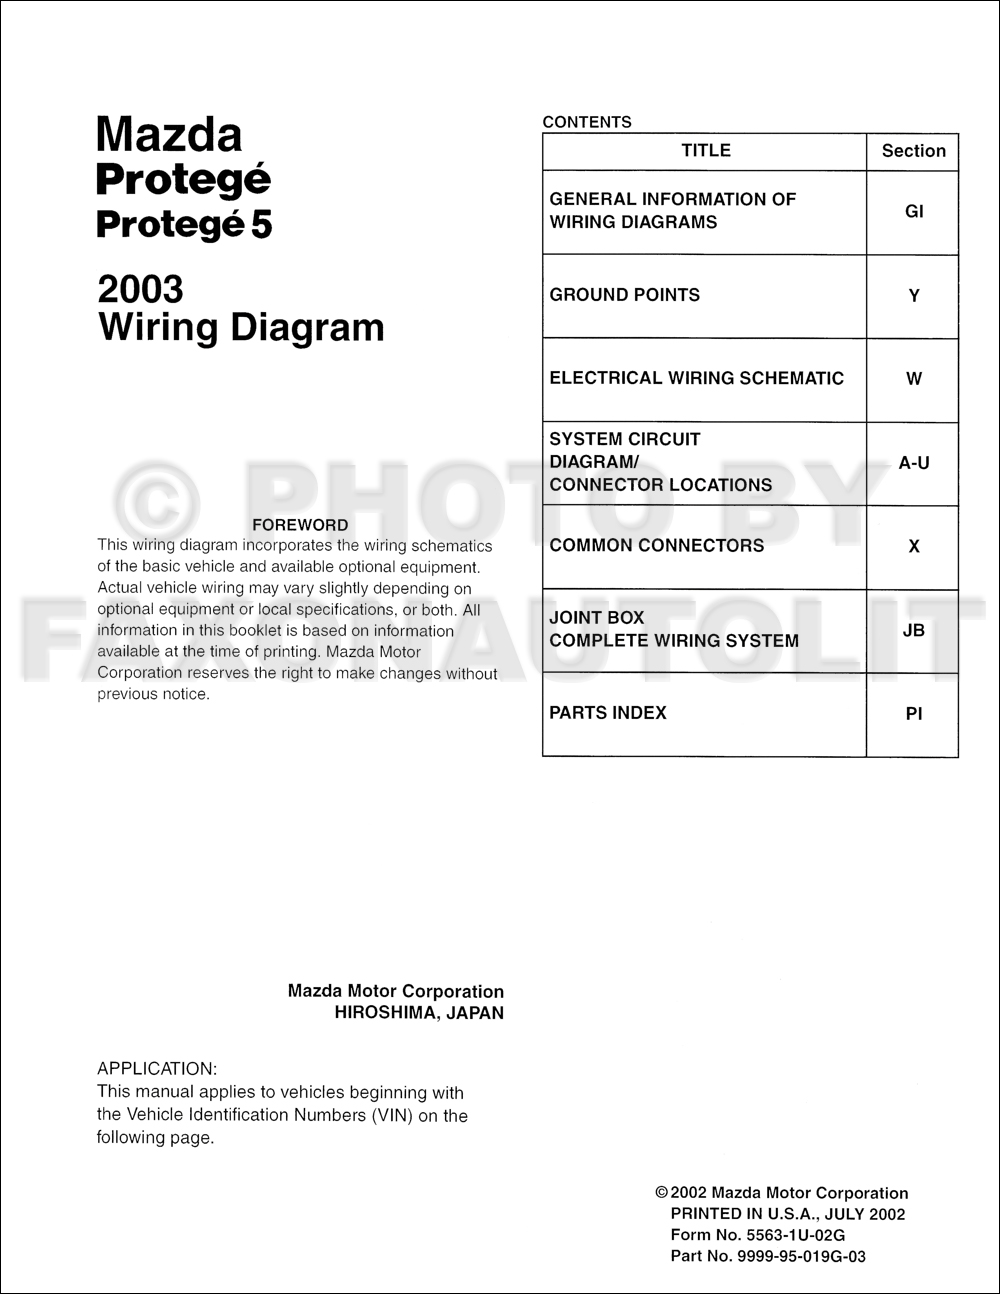 Mazda 3 Z6 Wiring Diagram : Mazda protege and wiring diagram manual original